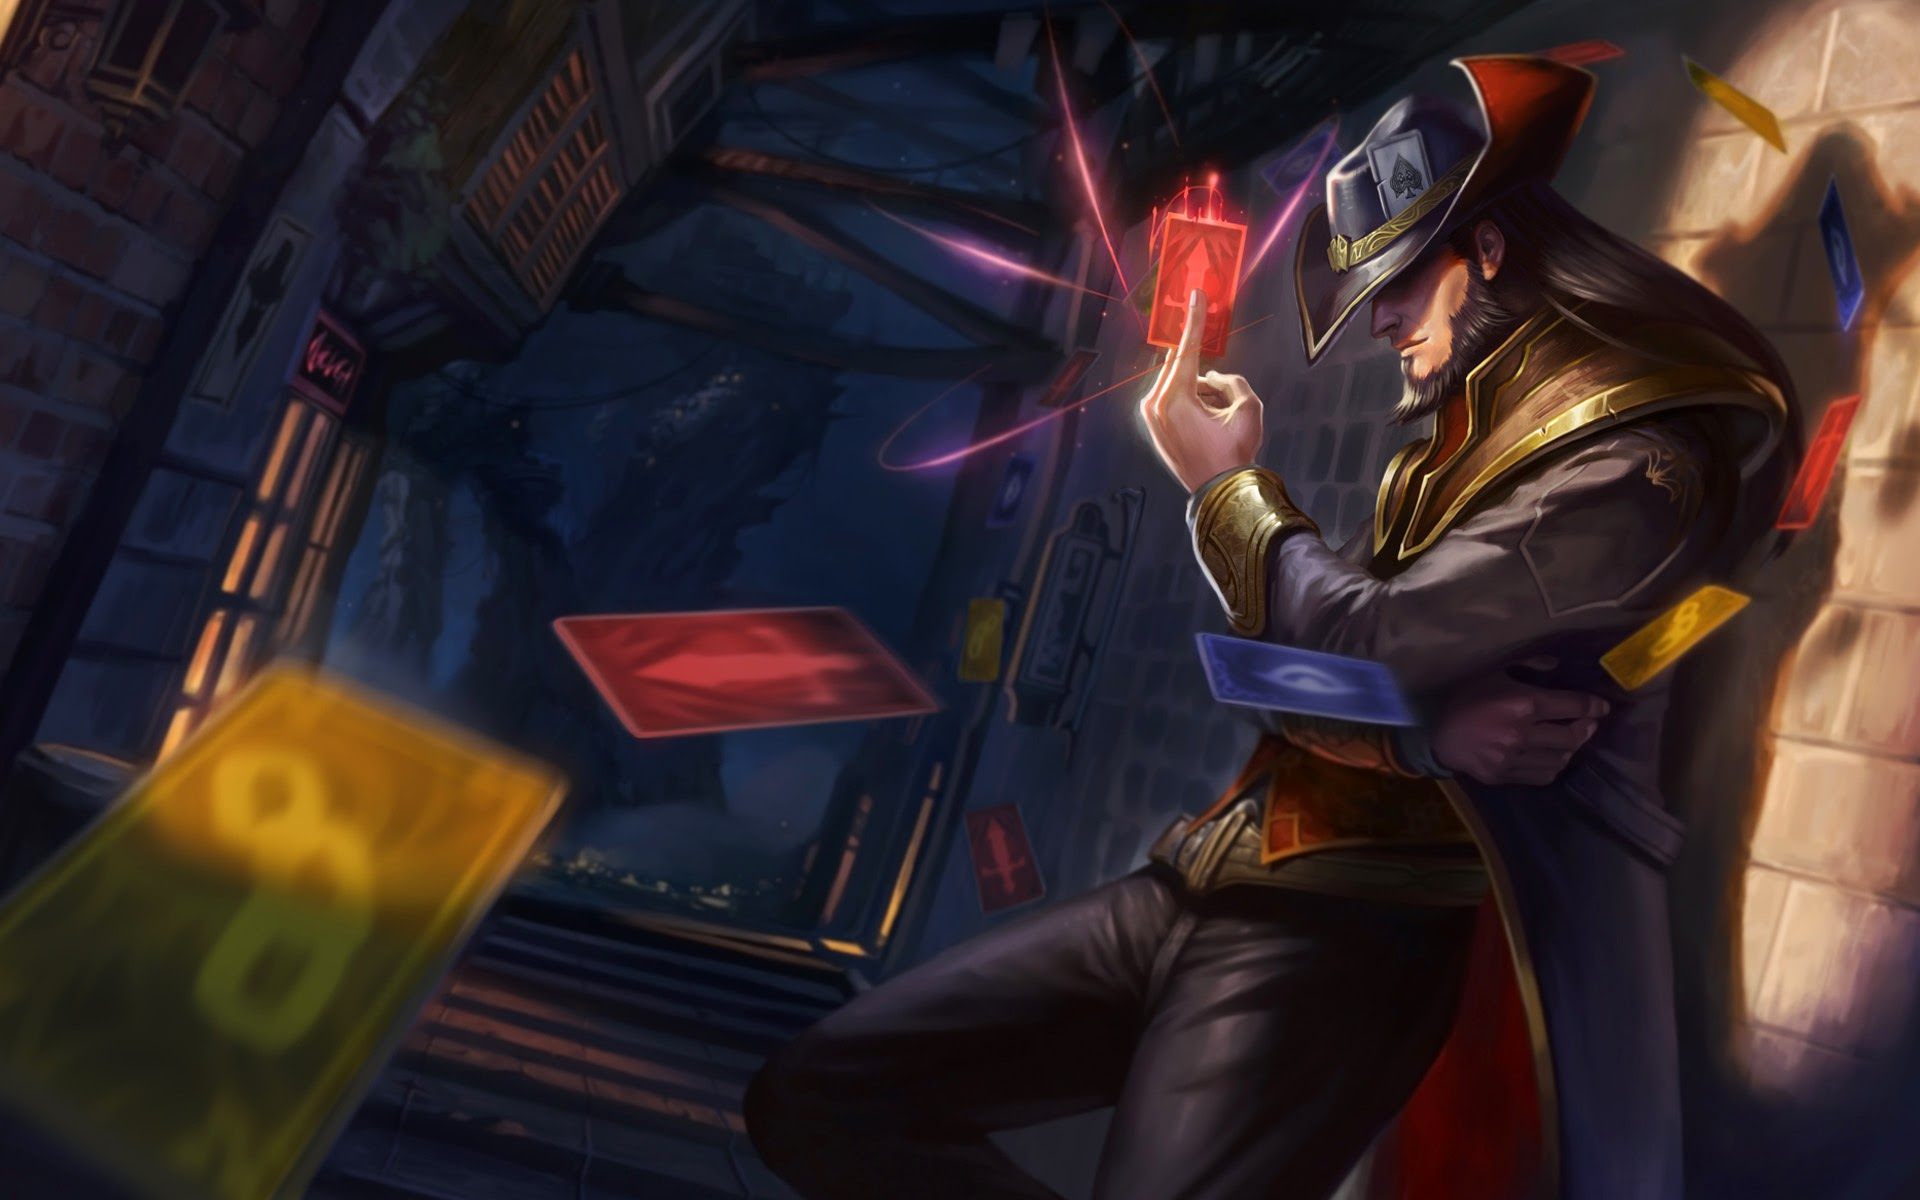 twisted fate cards league of legends LoL champion game hd wallpaper 1920x1200